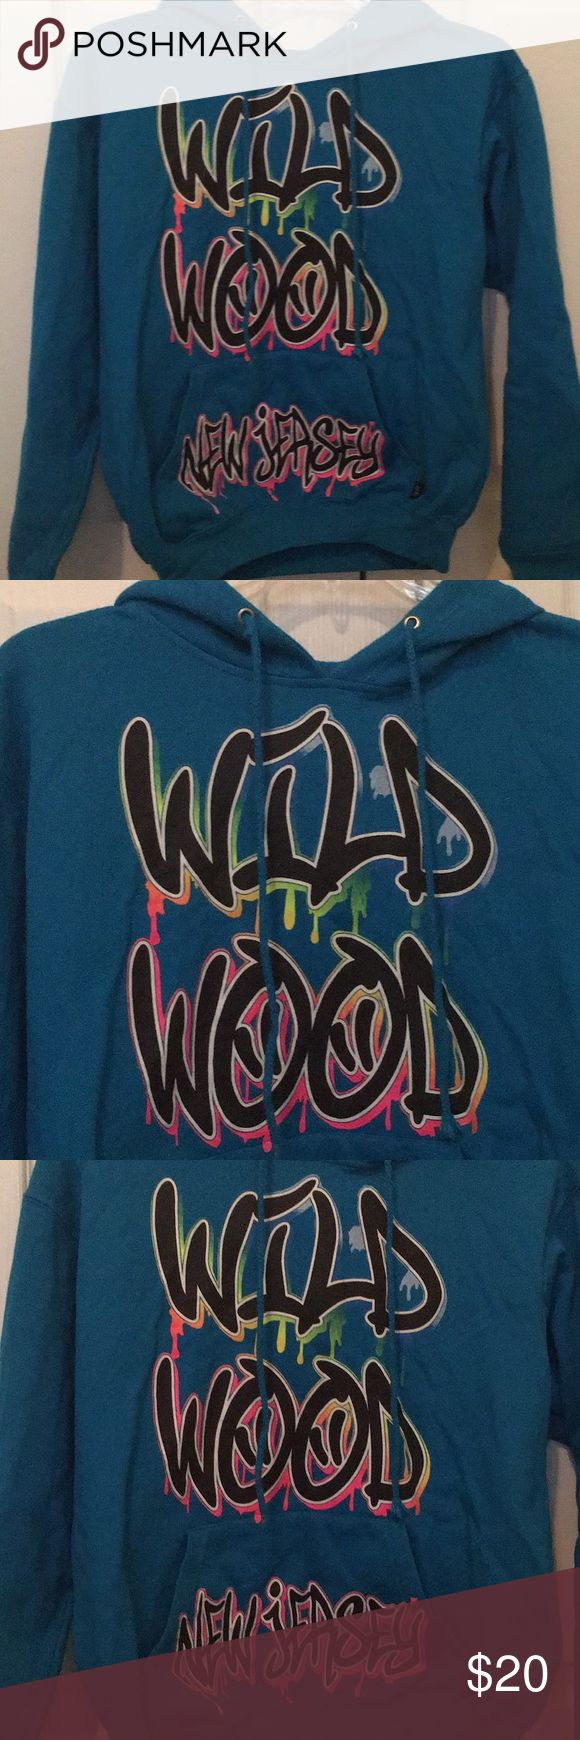 A blue and multi color Wild Wood hoodie This Wild Wood hoodie is multi coloured and is warm and perfect for a chilly day. Great for all ages Tops Sweatshirts & Hoodies